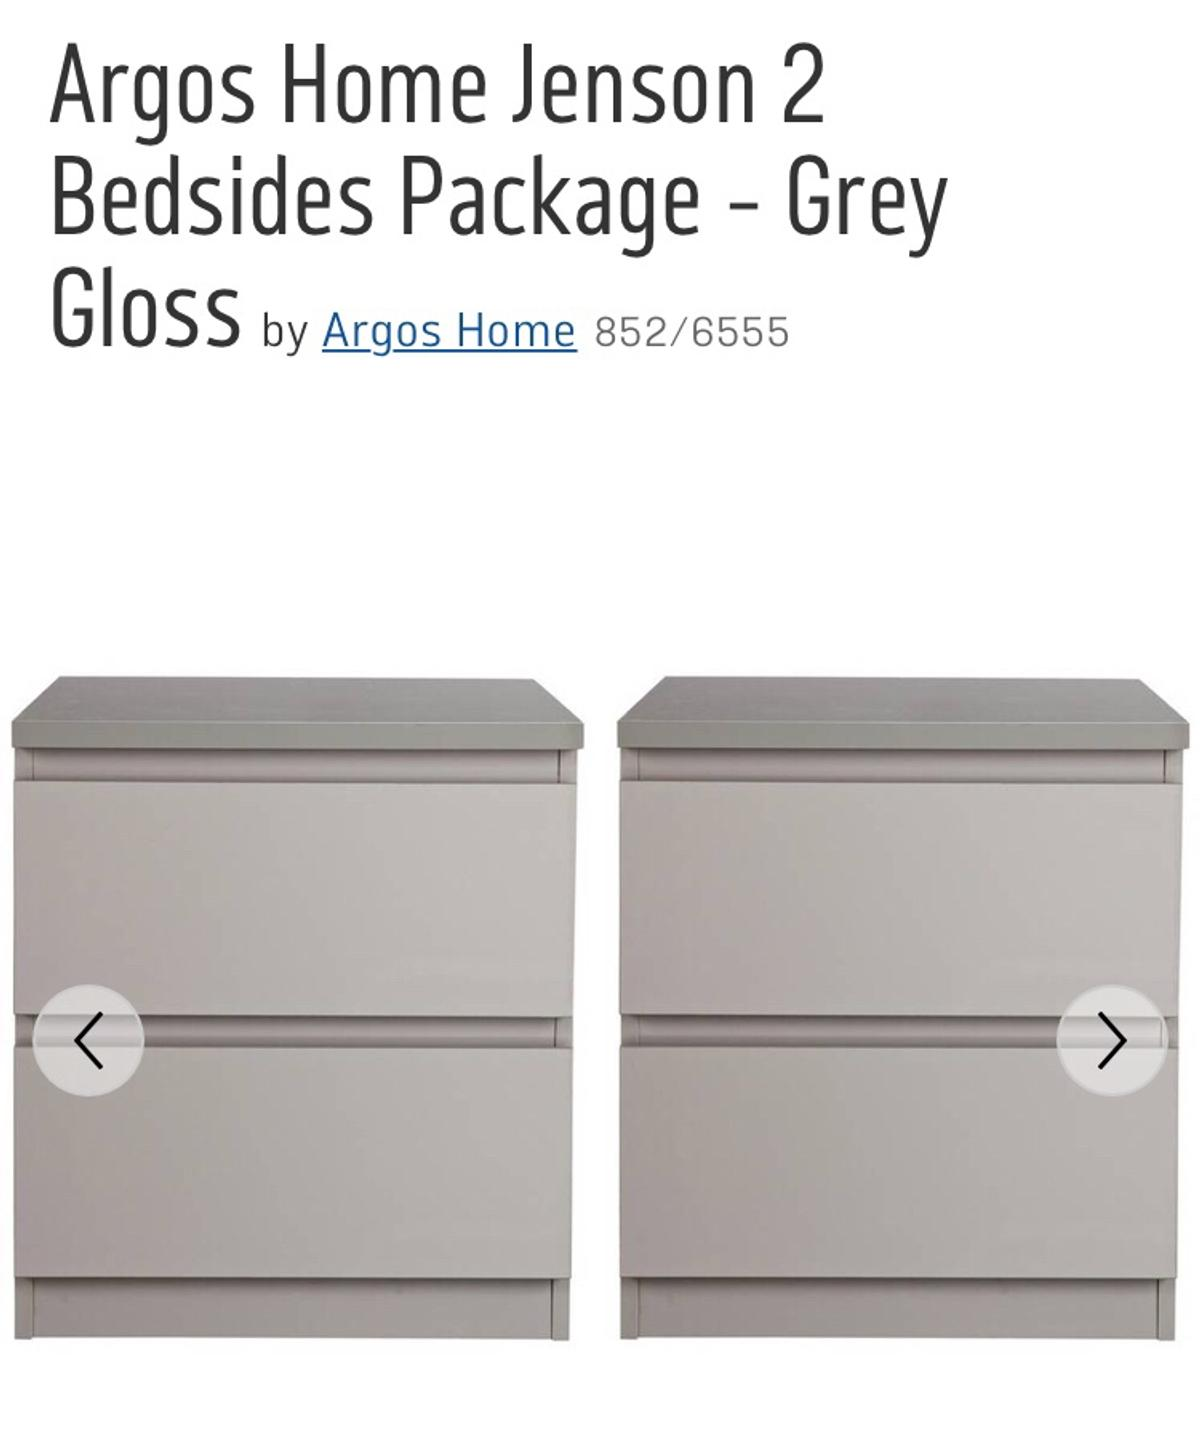 7336c4654840 Argos Home Jenson 2 Bedsides Package - Grey in St Albans for £70.00 ...